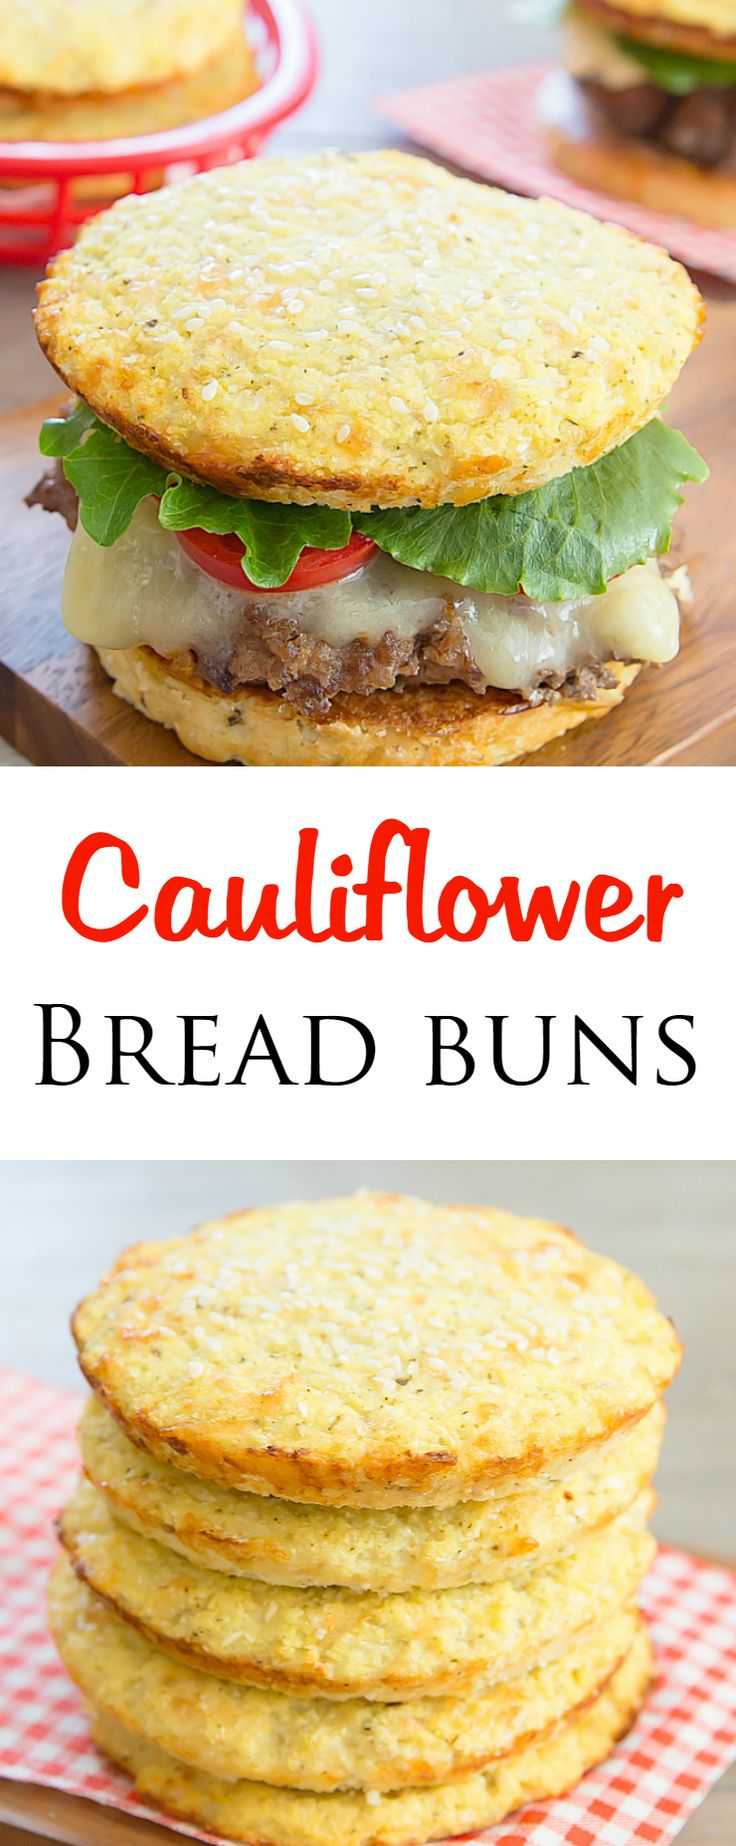 Cauliflower Bread Buns